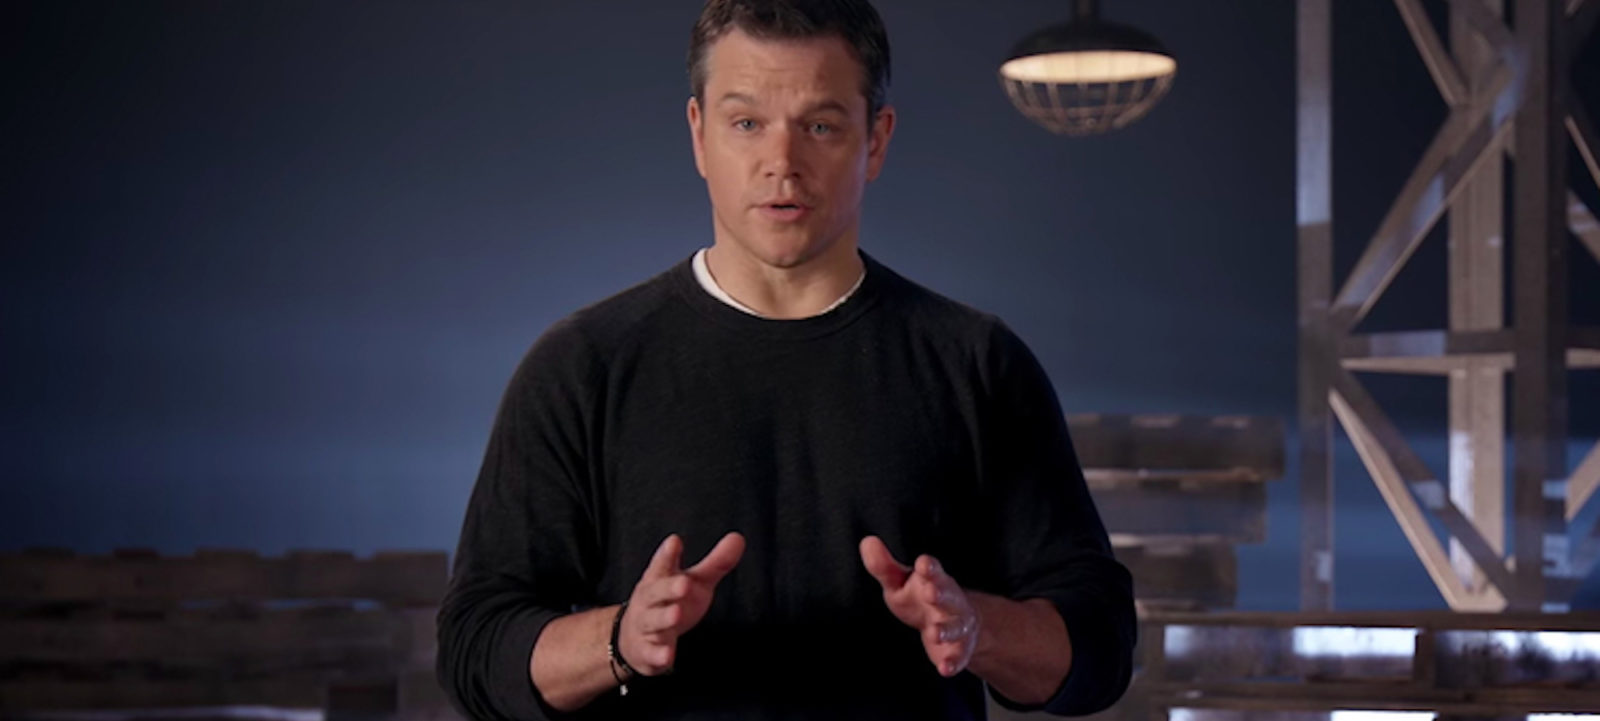 watch matt damon summarizes bourne trilogy in 90 seconds anglophenia bbc america. Black Bedroom Furniture Sets. Home Design Ideas